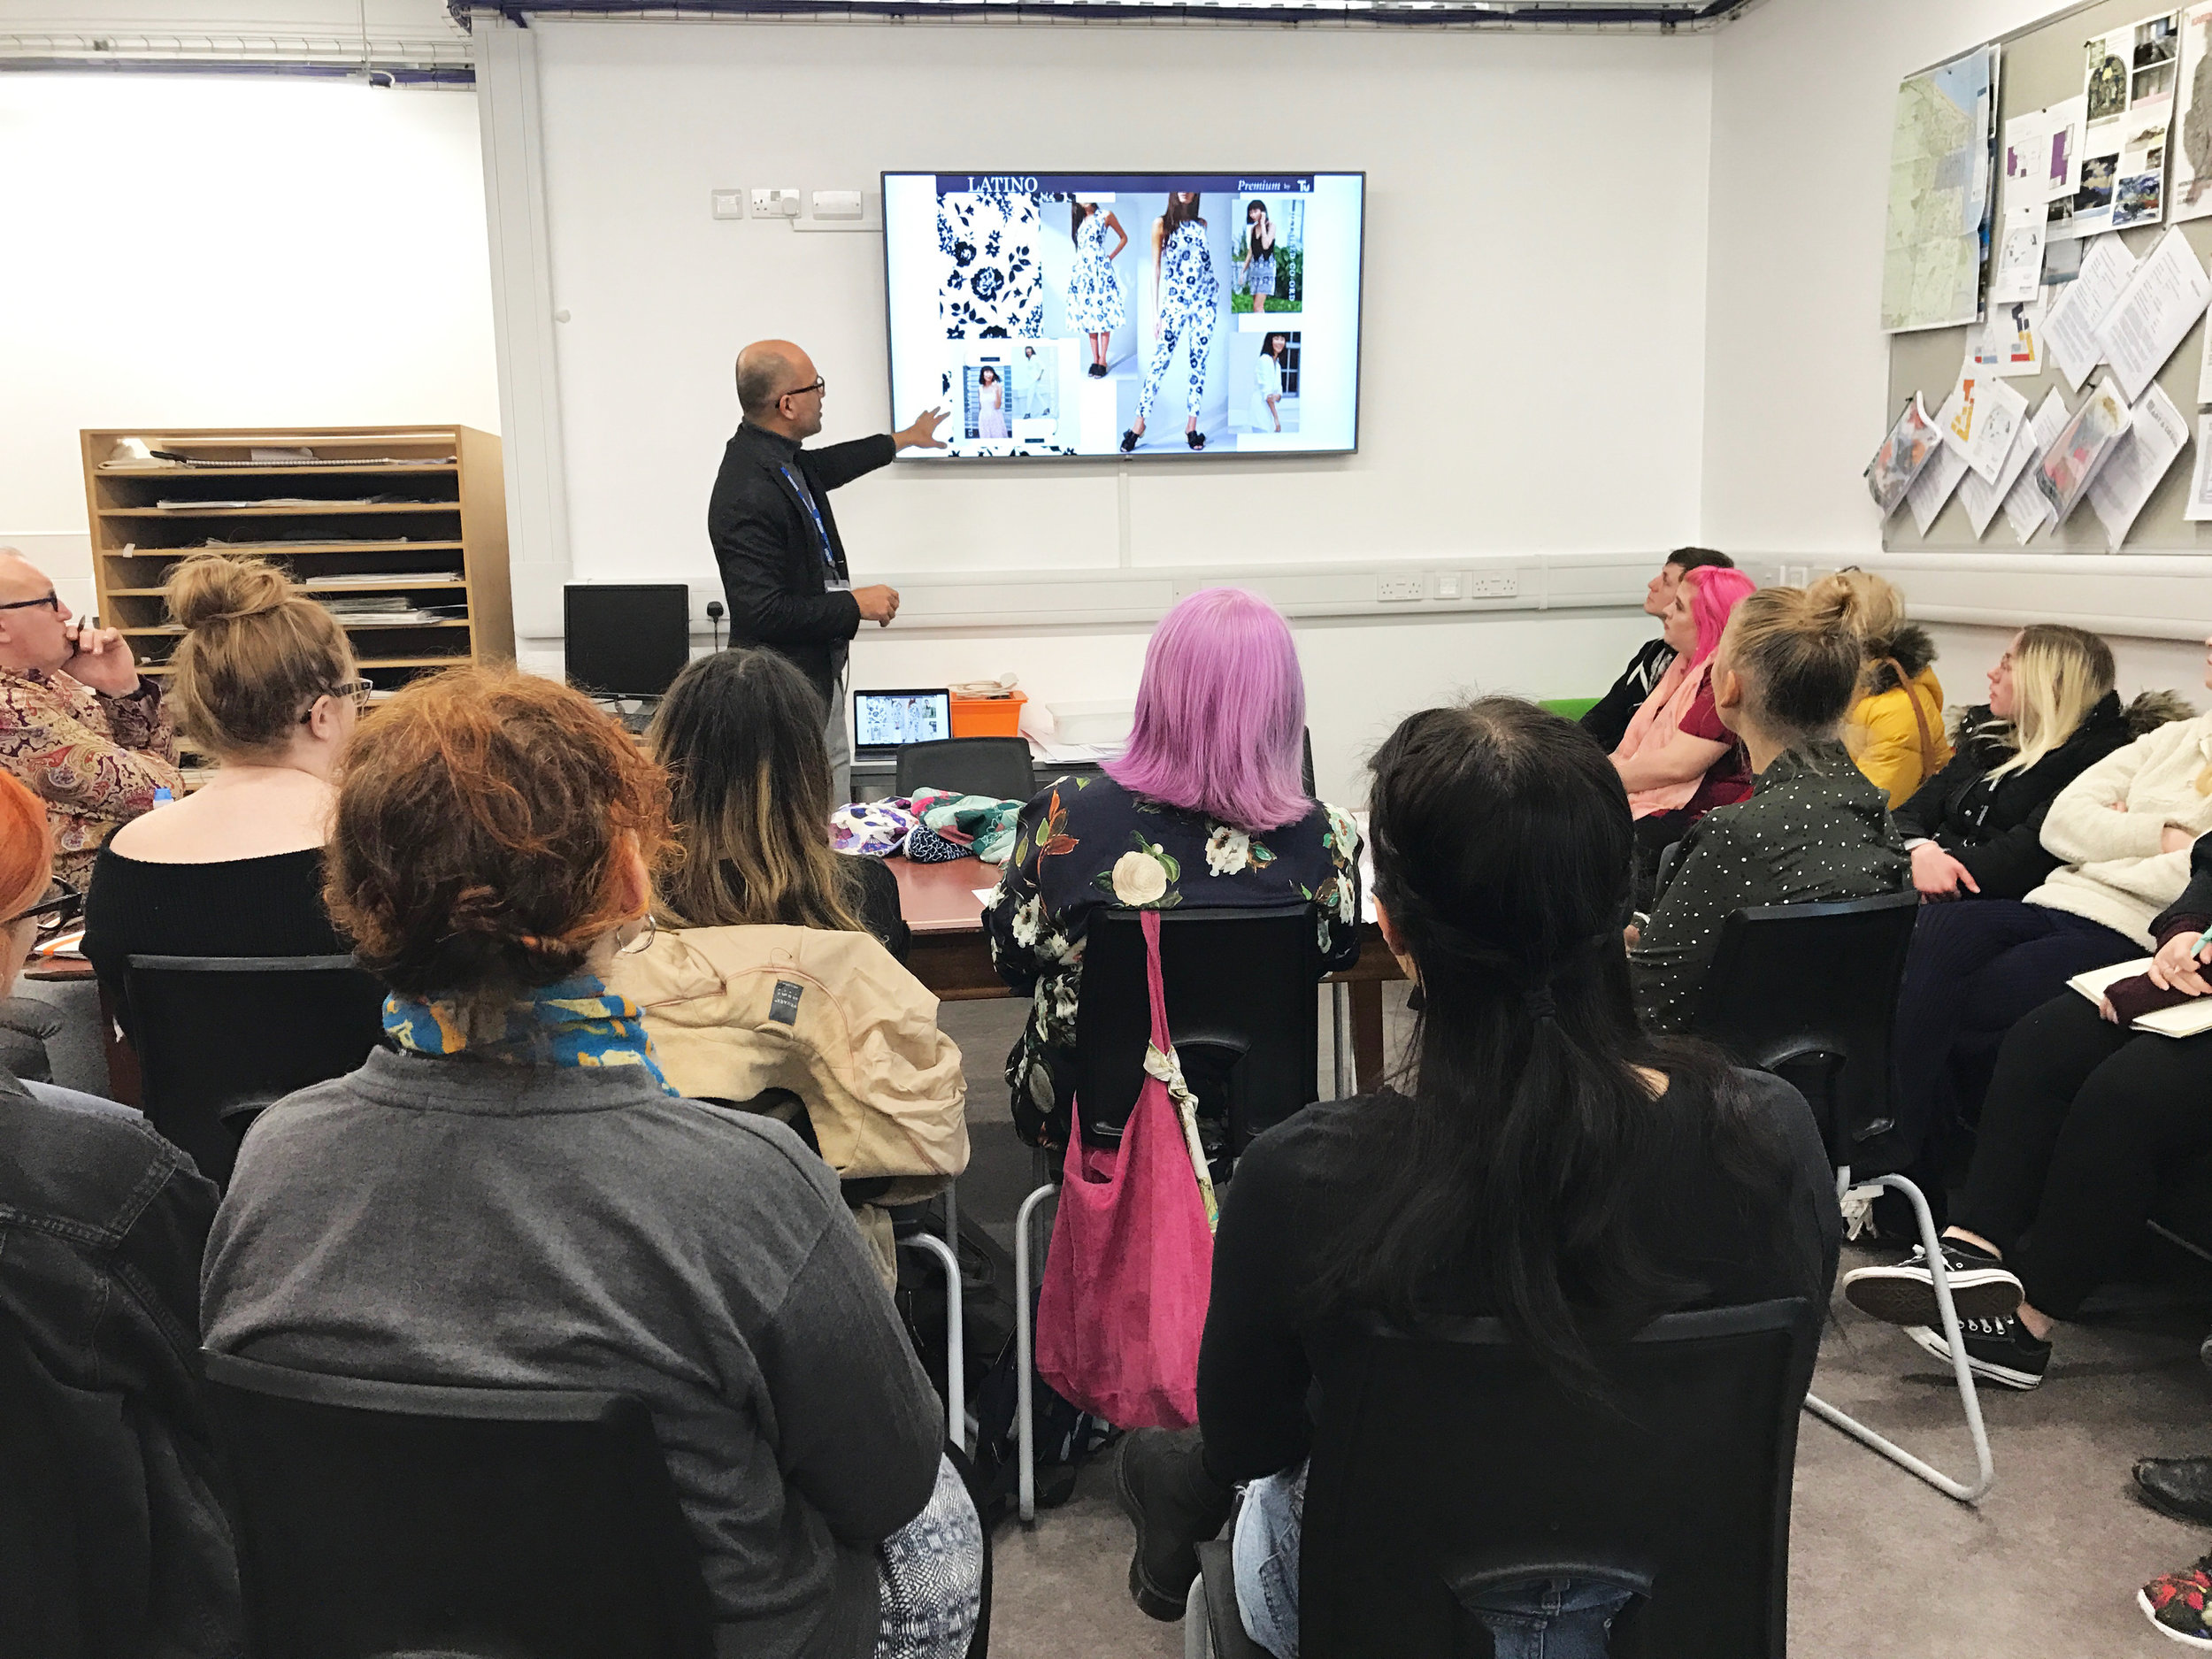 - I had the privilege to do a talk at Cleveland College of Art and Design about my journey in the world of Textiles and Fashion. I am very passionate about sharing my skills with students and encouraging them on their design journey.